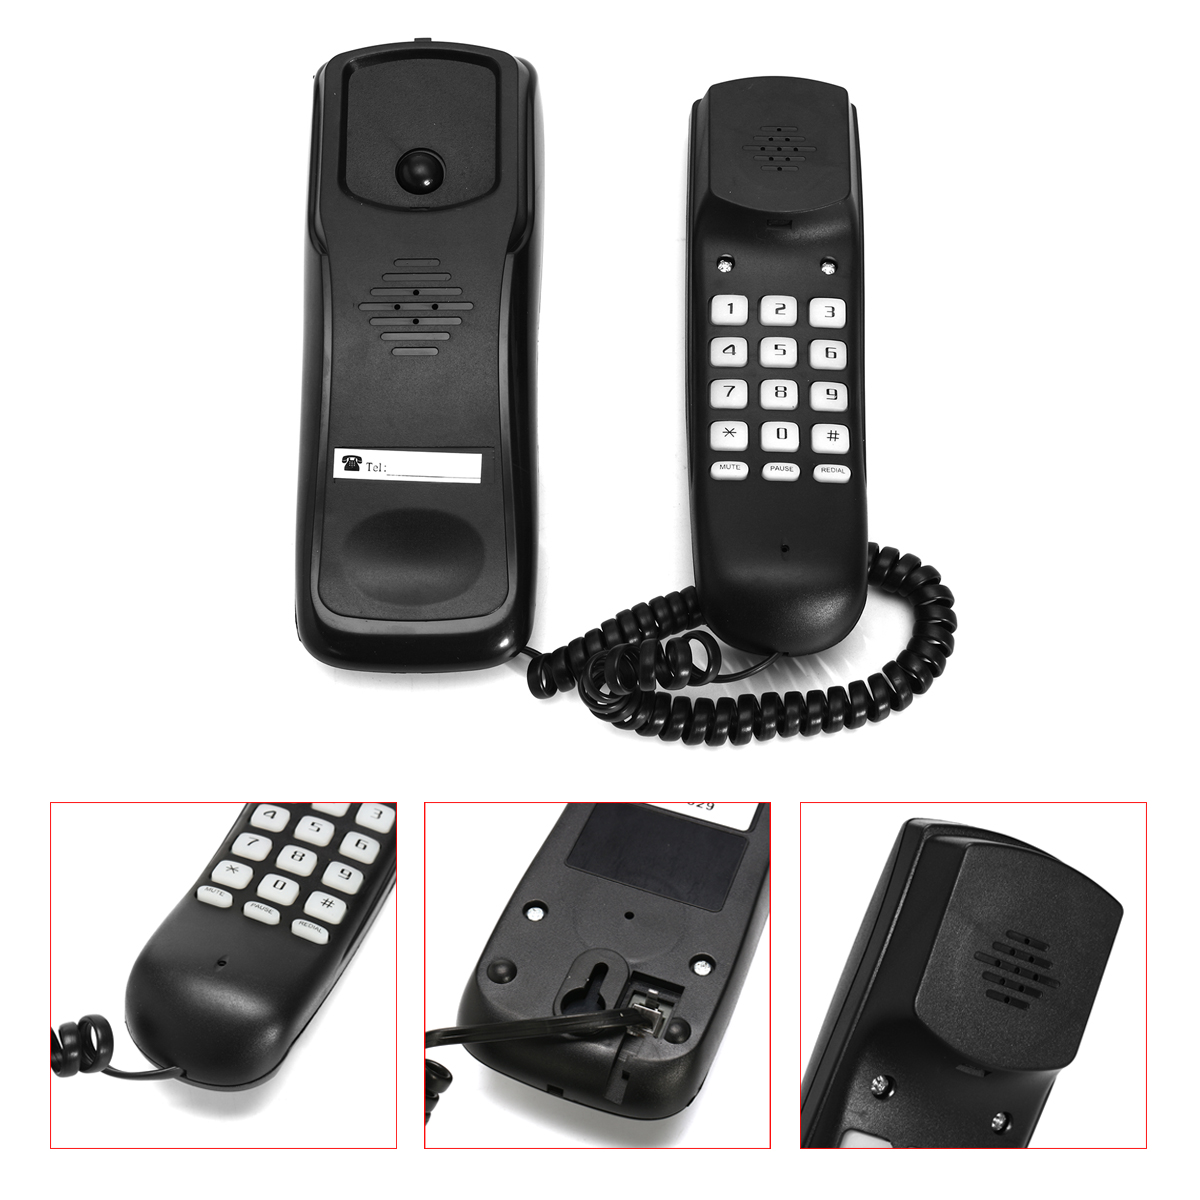 Advanced Telephones Wall Mountable Home Corded Phone, Phones For Seniors with Telephone Land